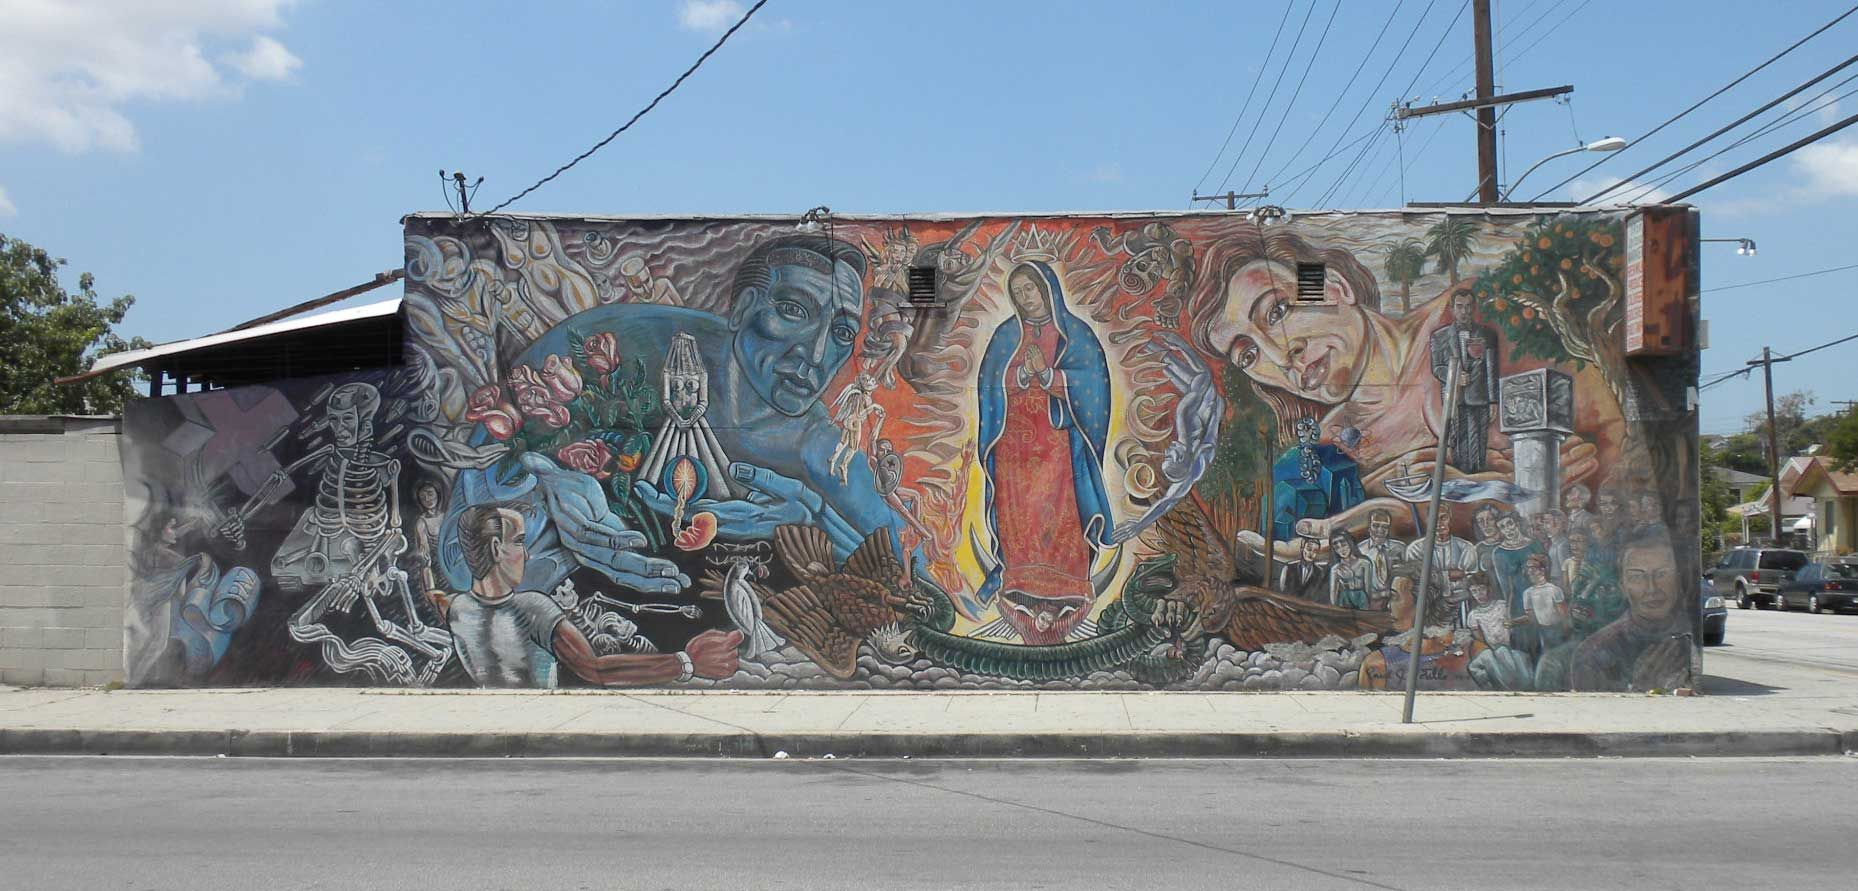 Google Image Result For Http Www Thedirtfloor Com Wp Content Uploads 2010 05 Street Art Mural By Paul J Botell East Los Angeles Street Art Los Angeles Museum